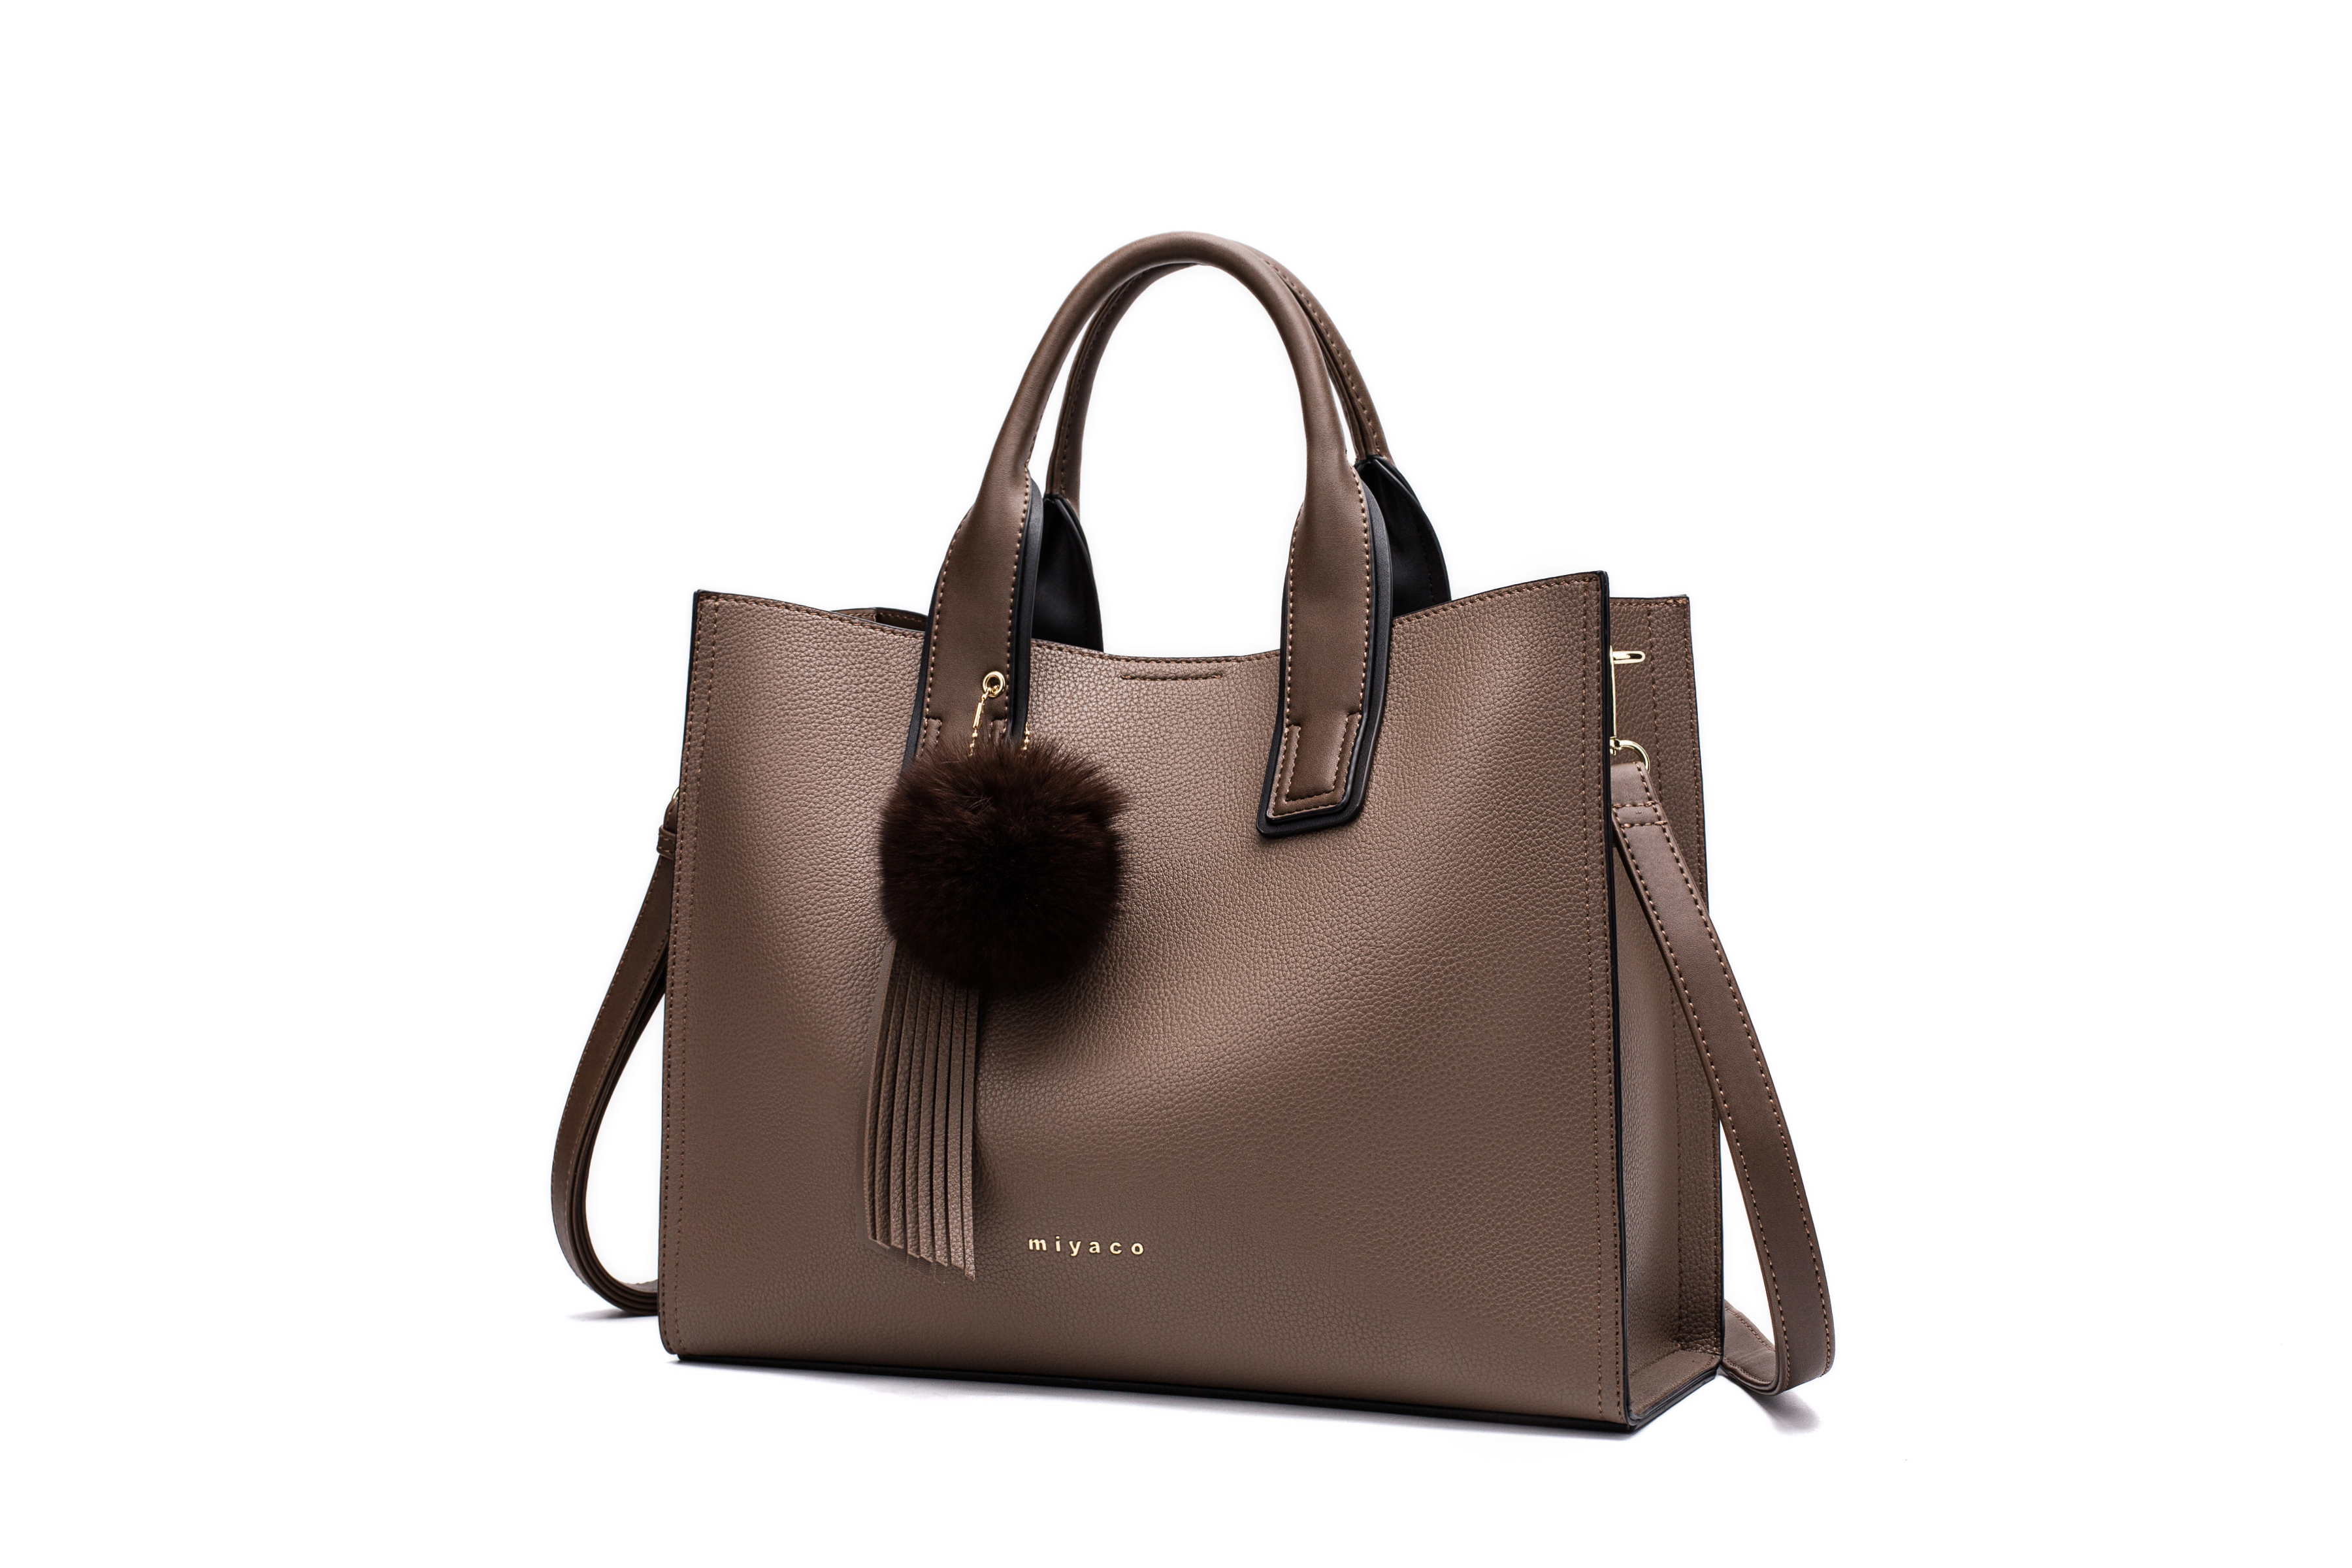 c8f4ba259a Details about Miyaco Women Leather Handbags Casual Brown Tote bags  Crossbody Bag TOP-handle